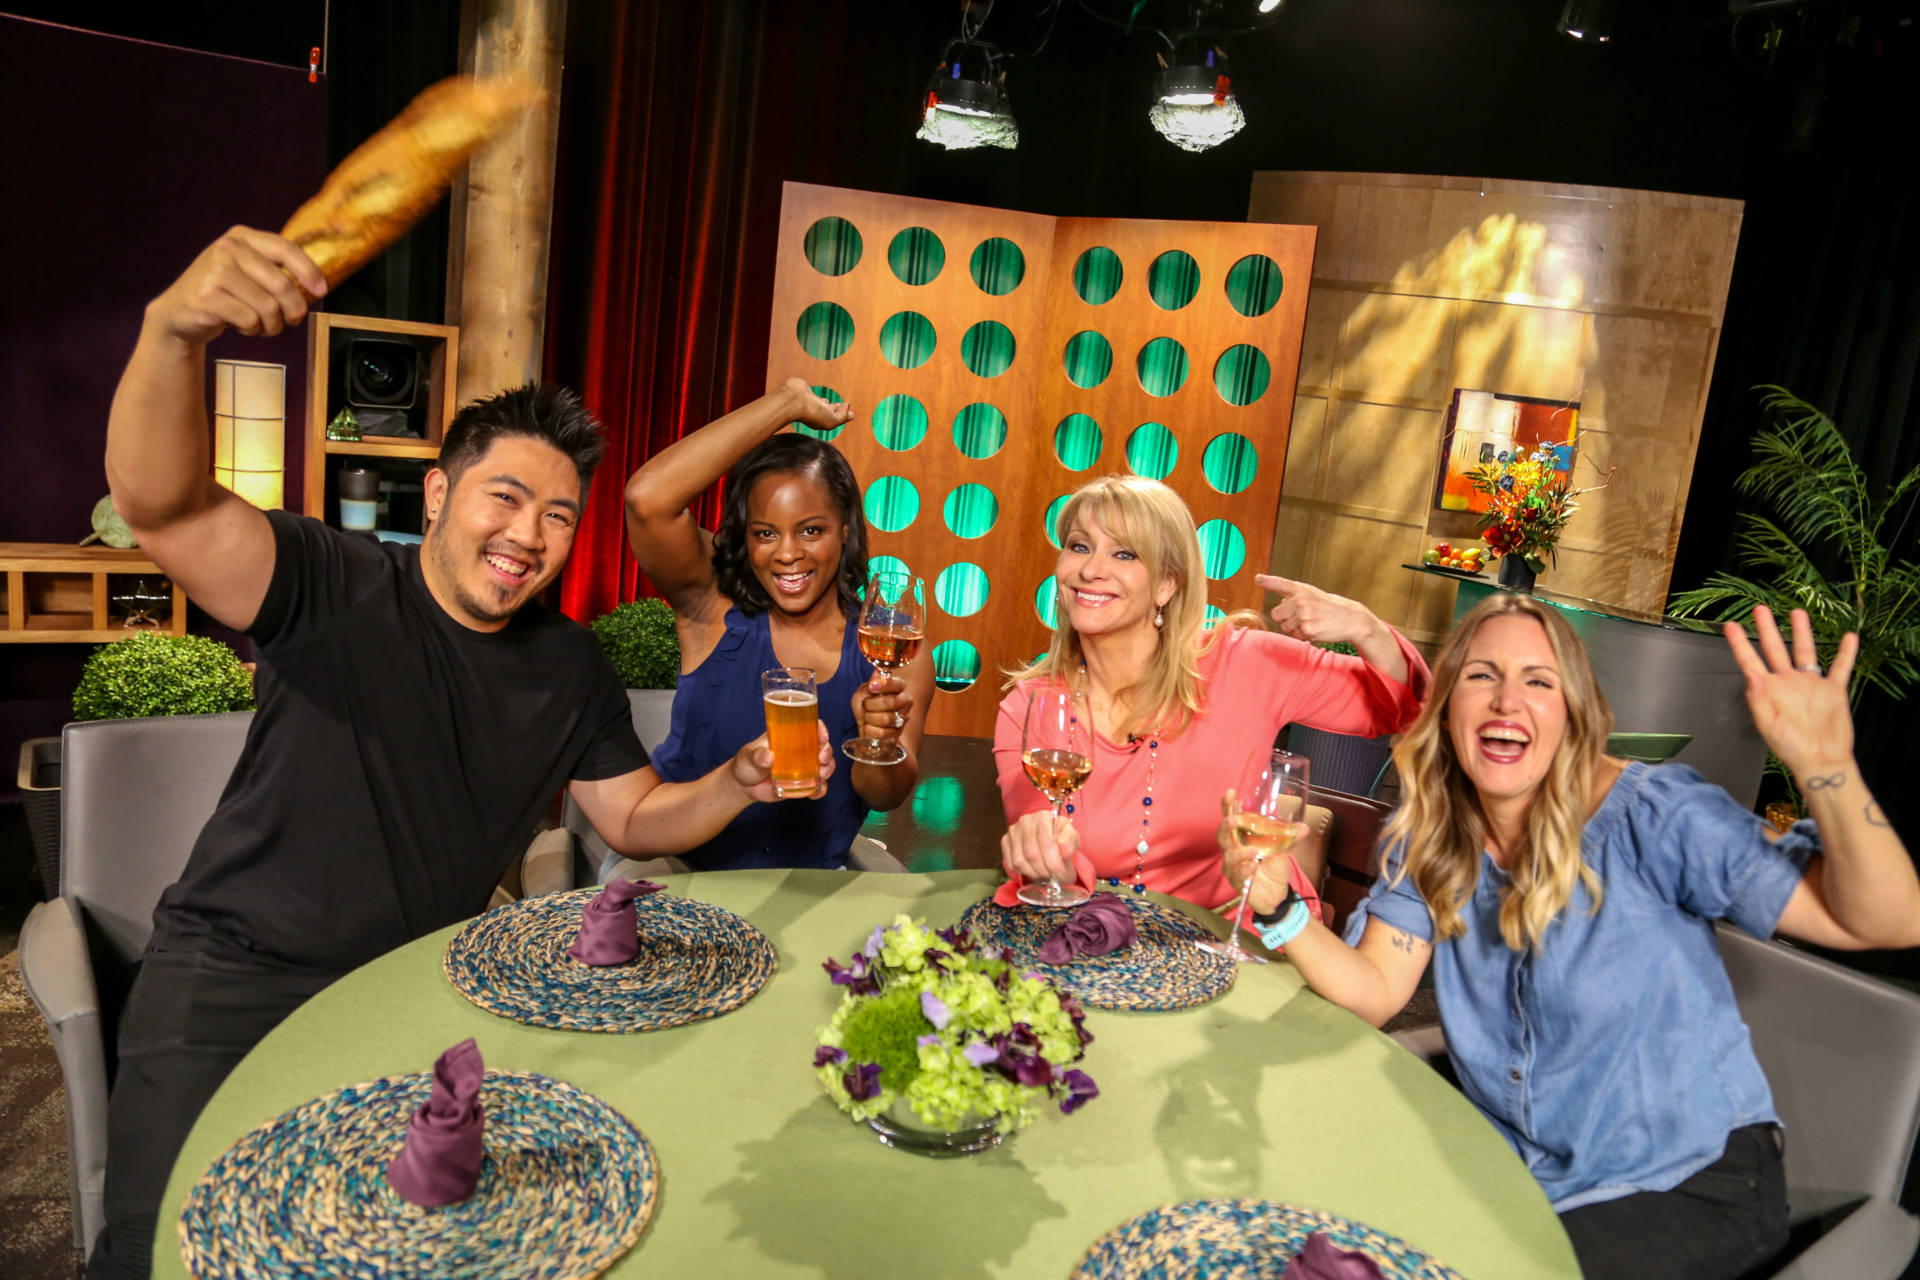 Host Leslie Sbrocco and guests on the set of season 13 episode 12.